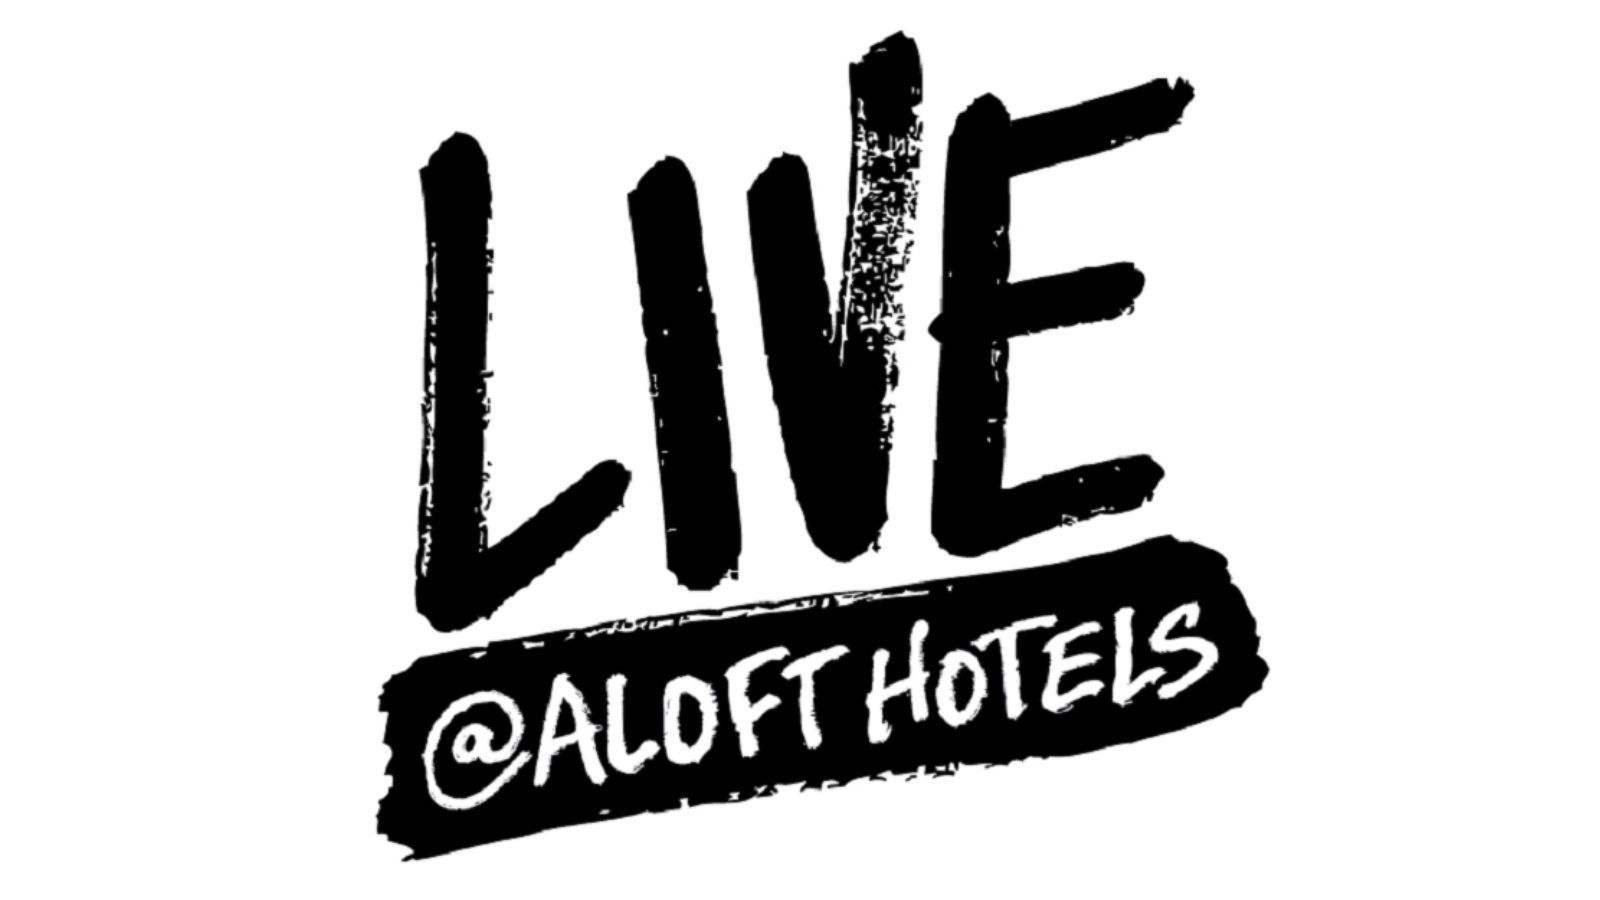 Green Bay Bar - Live At Aloft Hotels